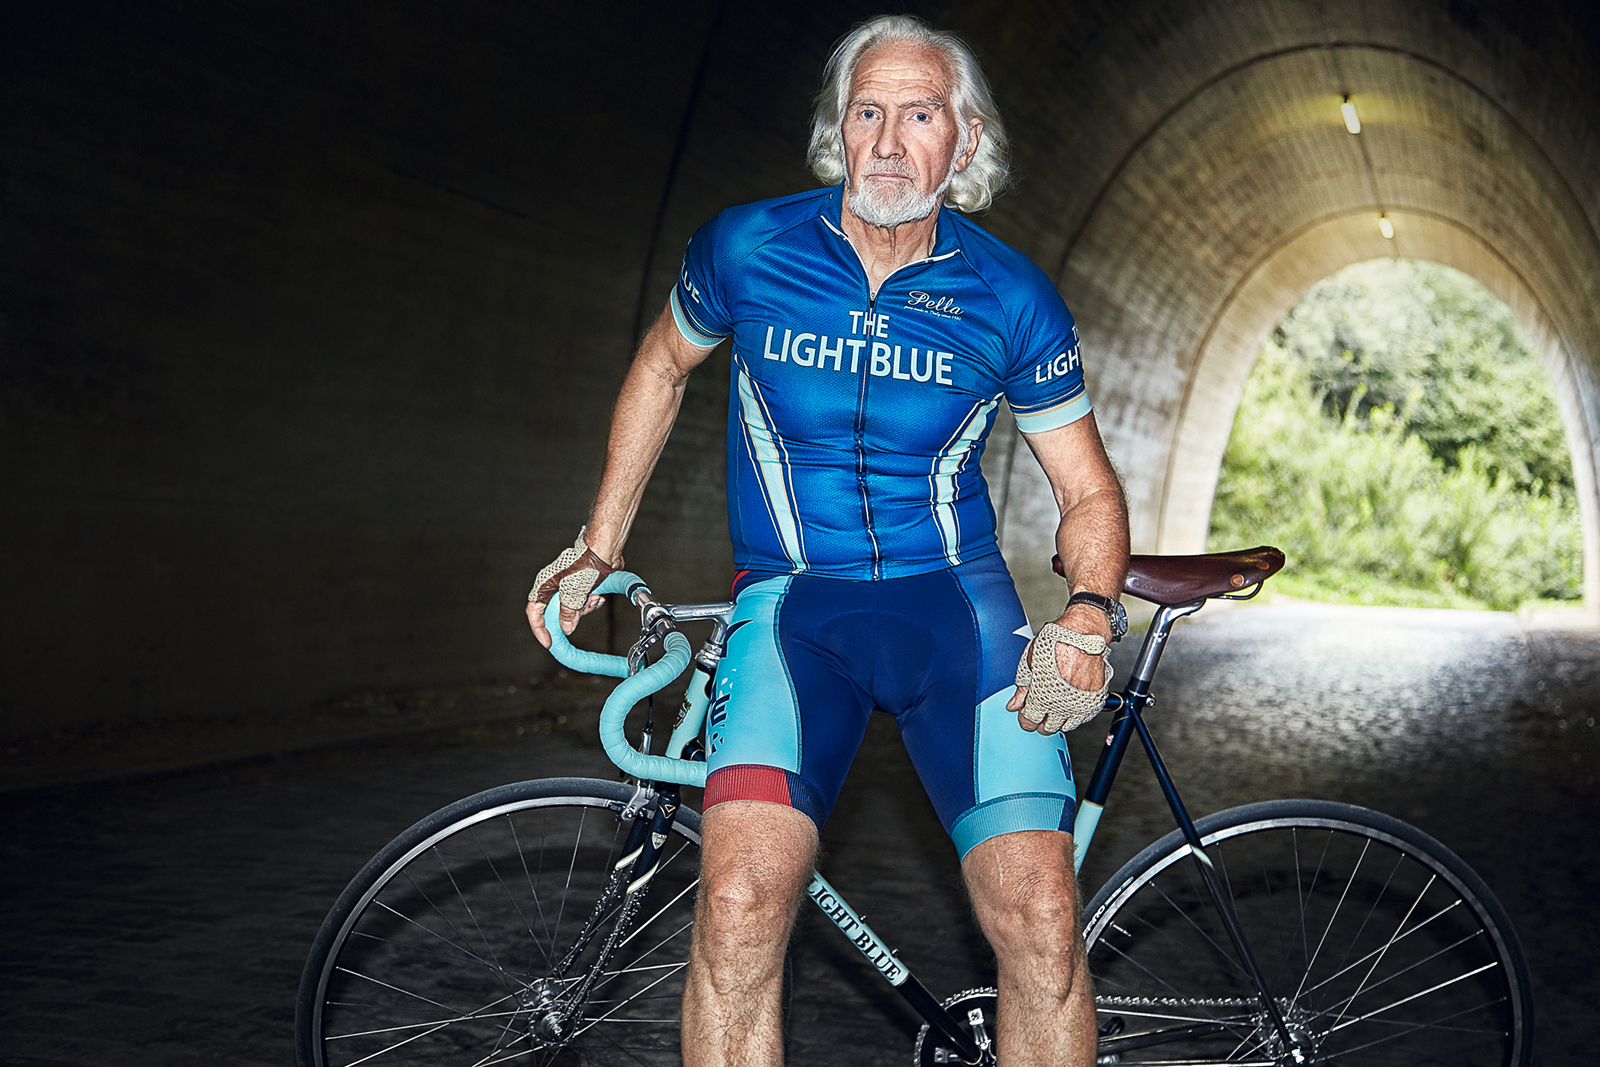 The Light Blue Cycles UK Portrait